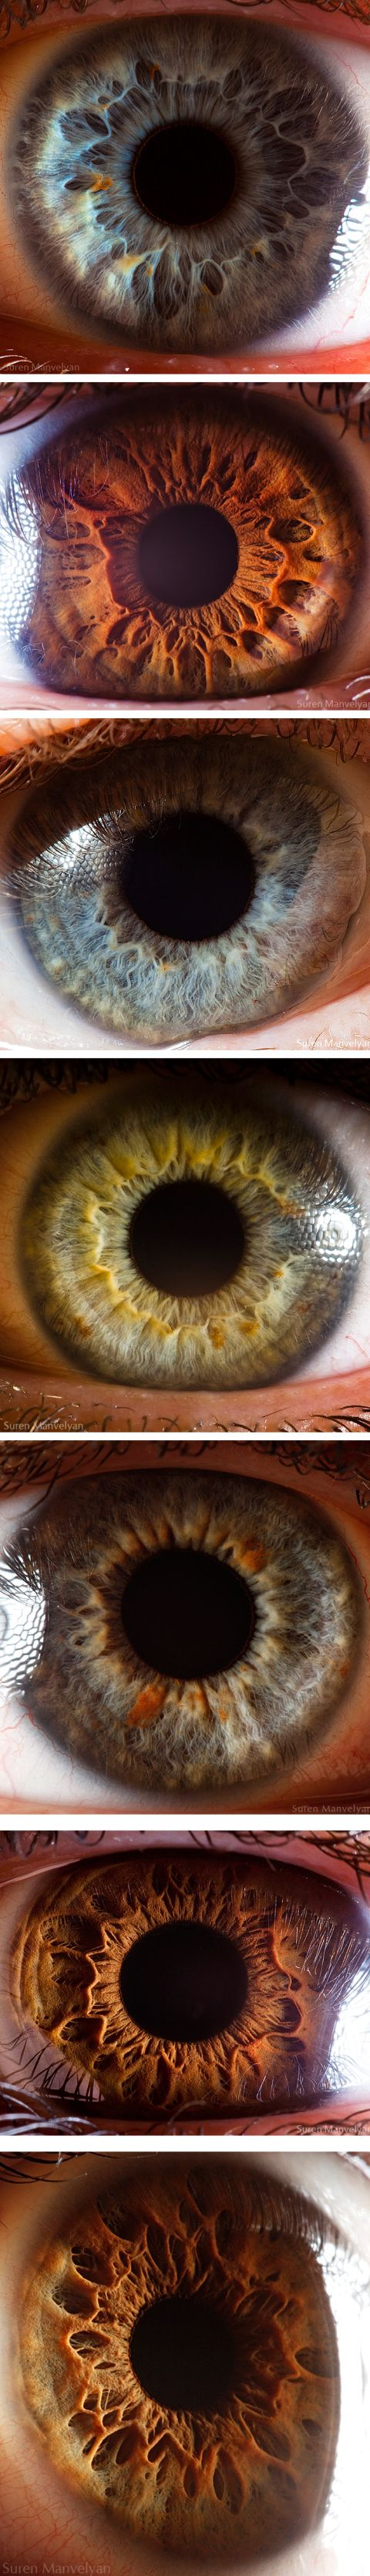 3. Close-up. Close up photography of the human eye.